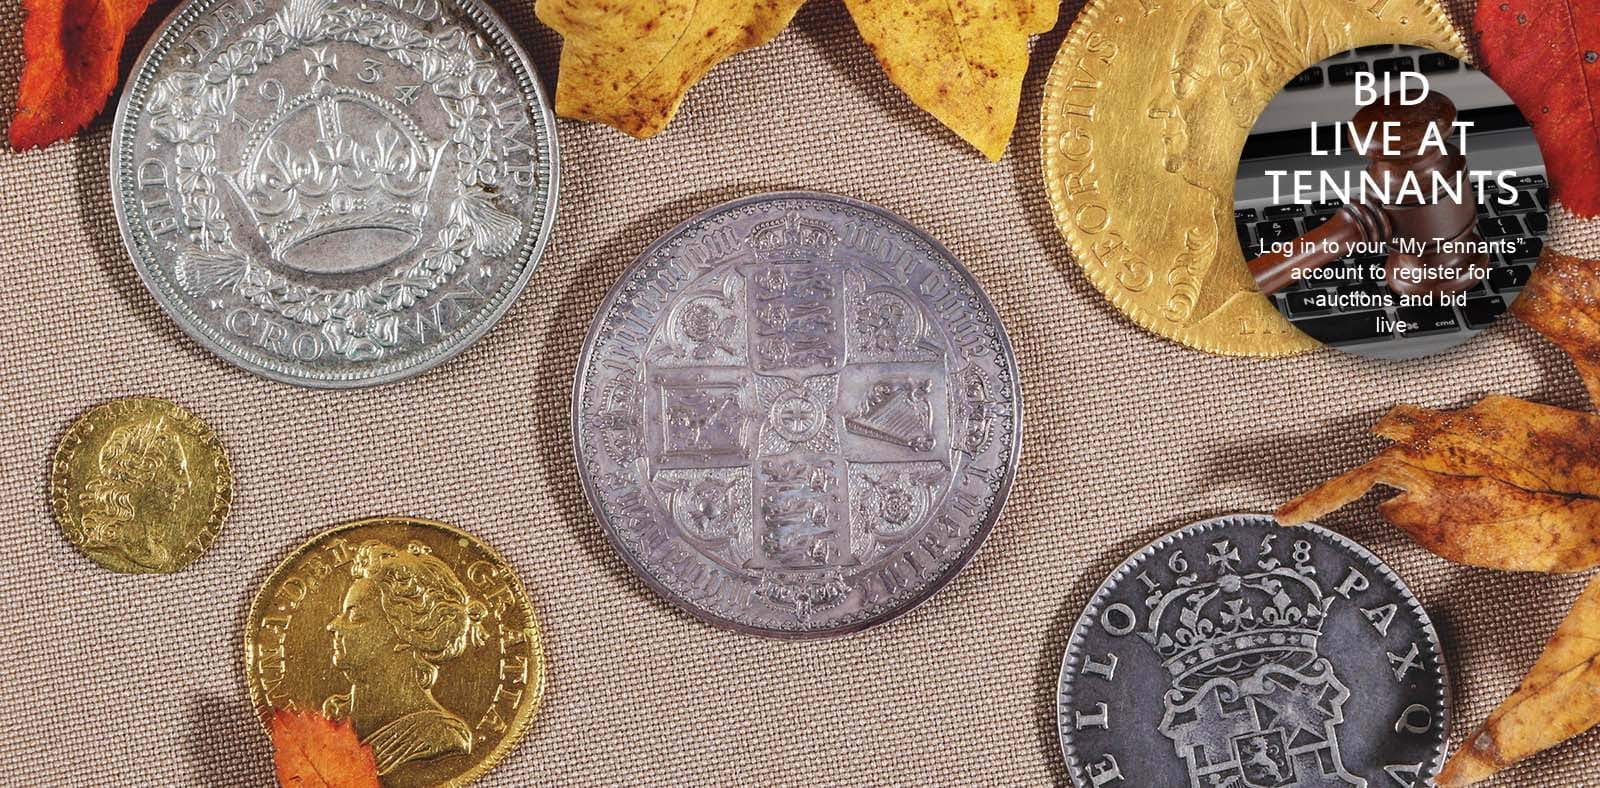 Coins & Banknotes Banner Image